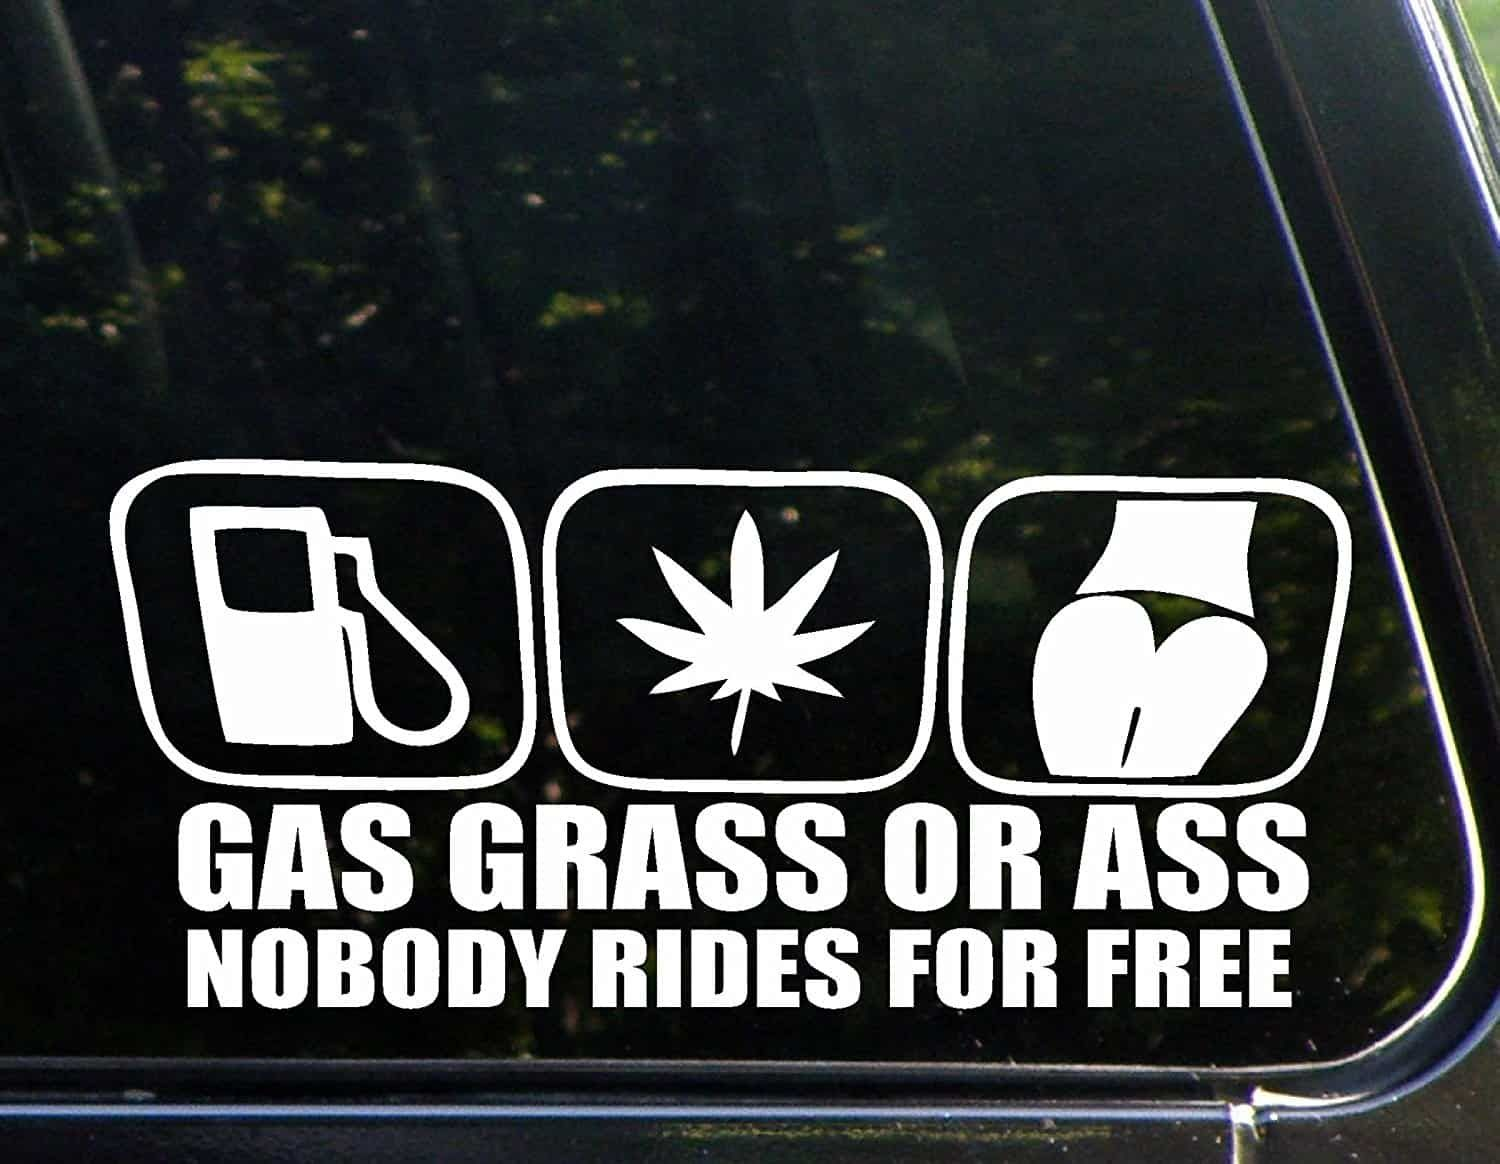 Nobody rides for free car decal giftideas thingsidesire bumperstickers caraccessories cardecals carstickers decals stickers wiperstickers